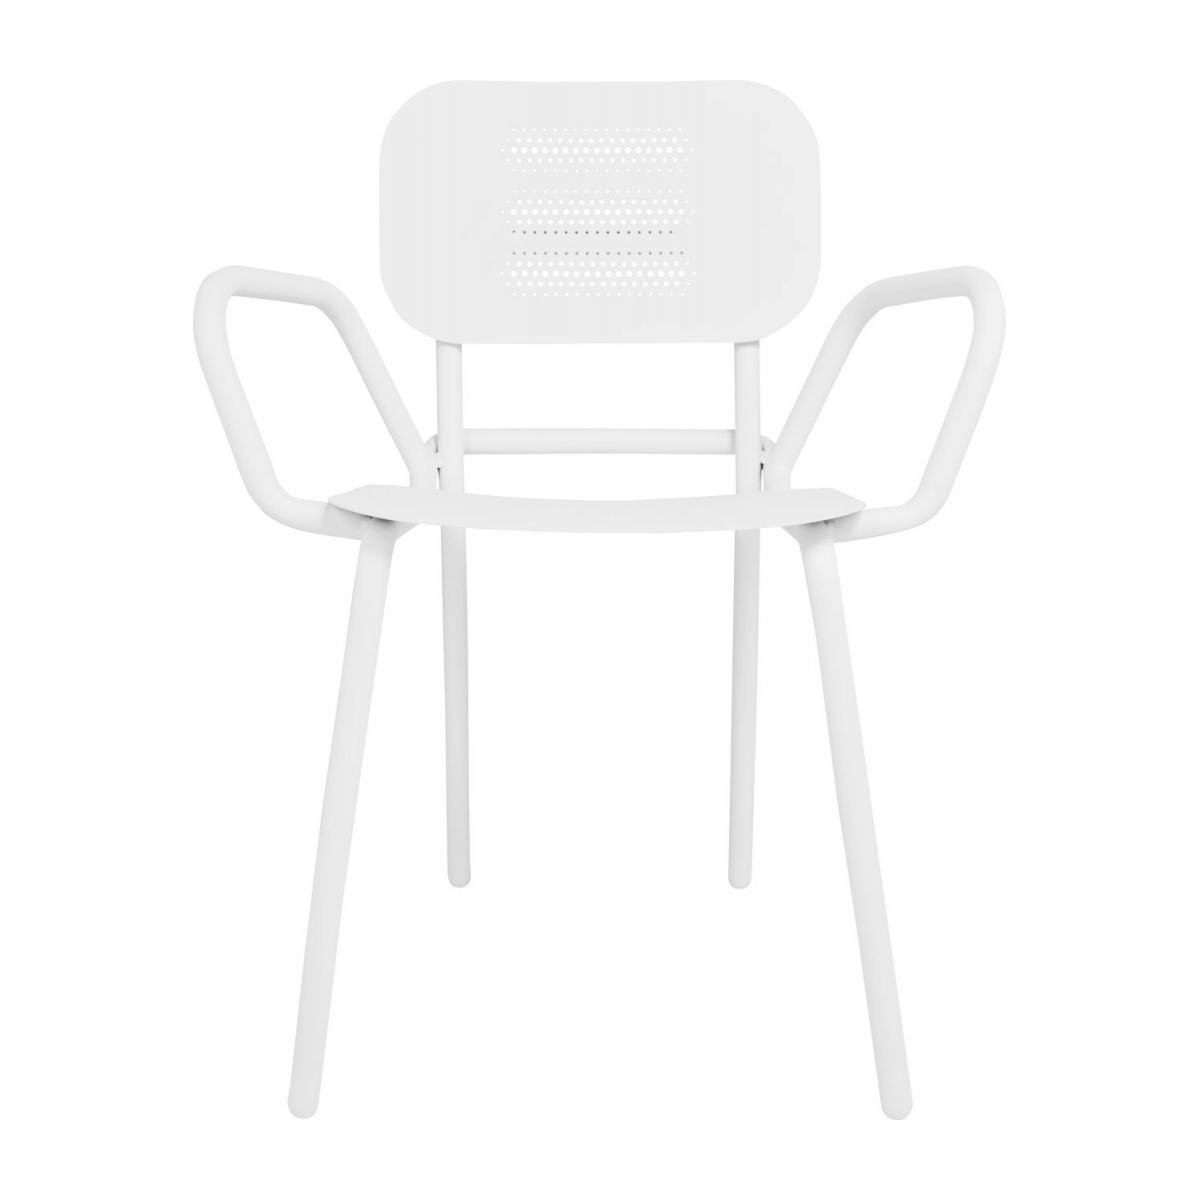 Garden chair with armrests n°4